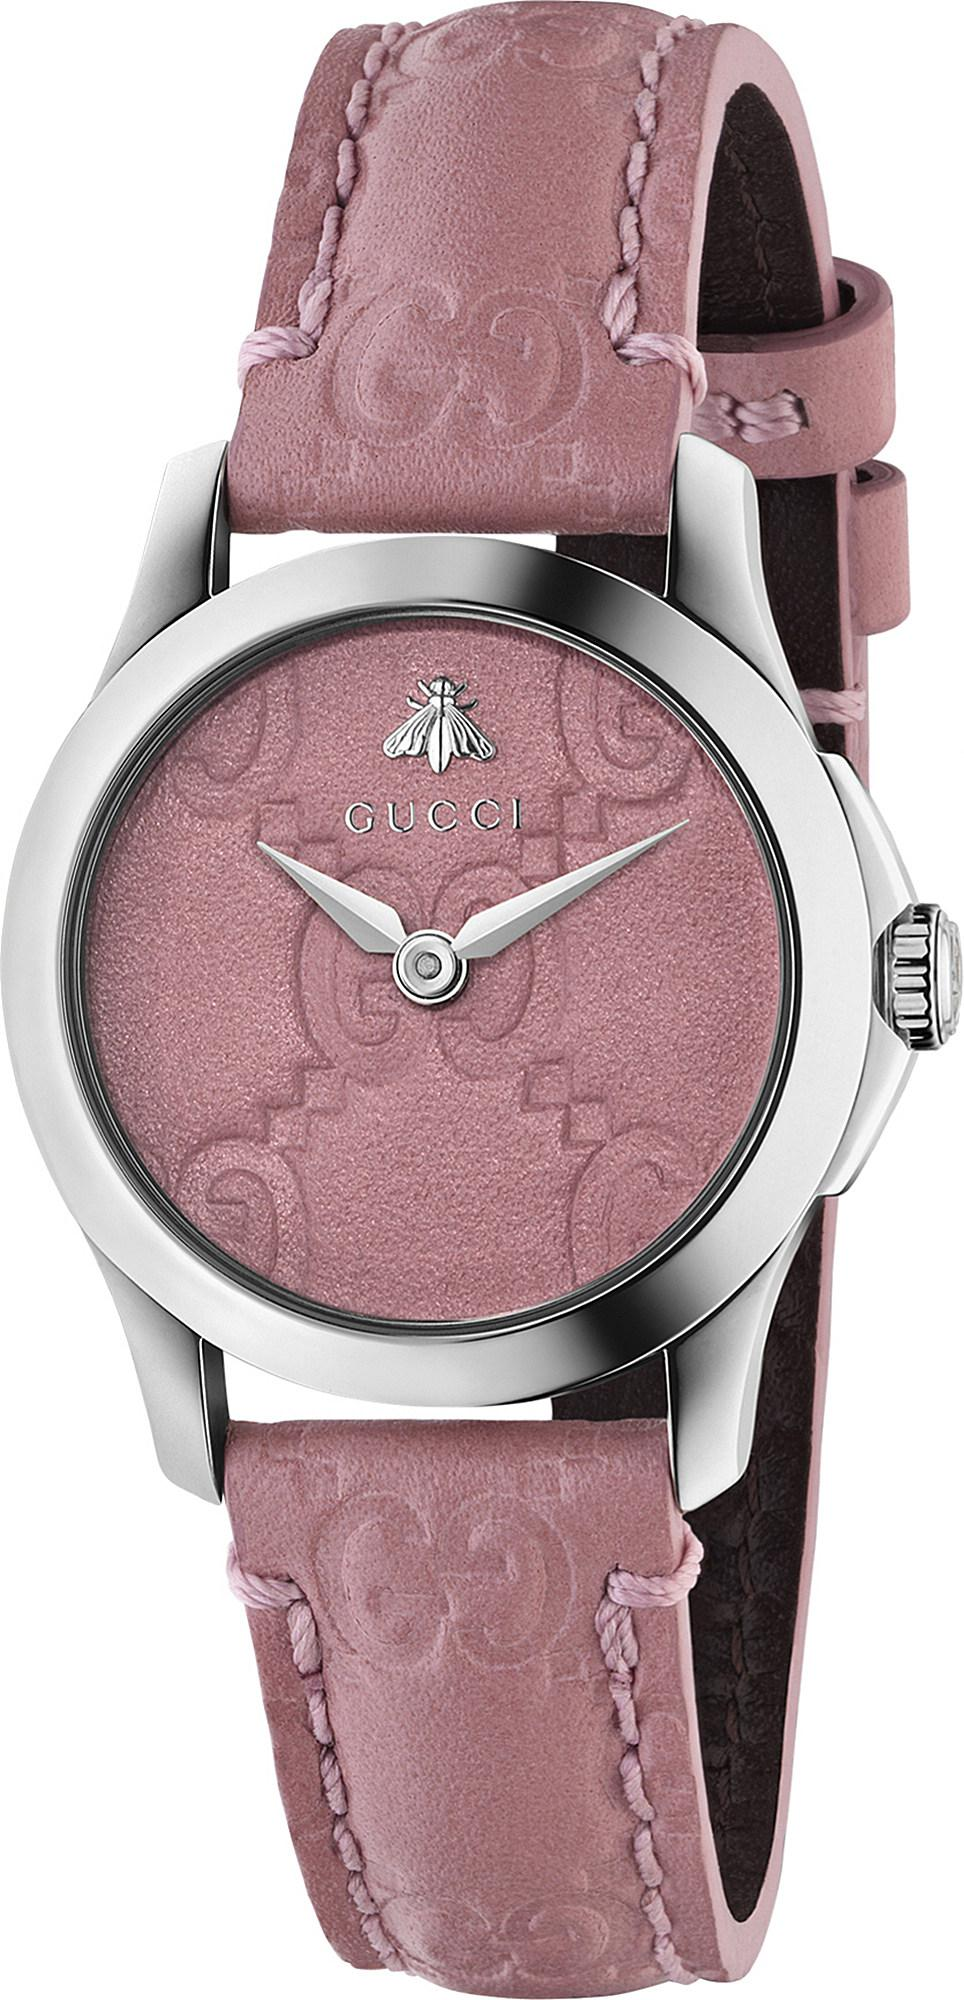 f1f175dca1e Gucci - Pink Ya126578 G-timeless Collection Stainless Steel And Leather  Watch - Lyst. View fullscreen